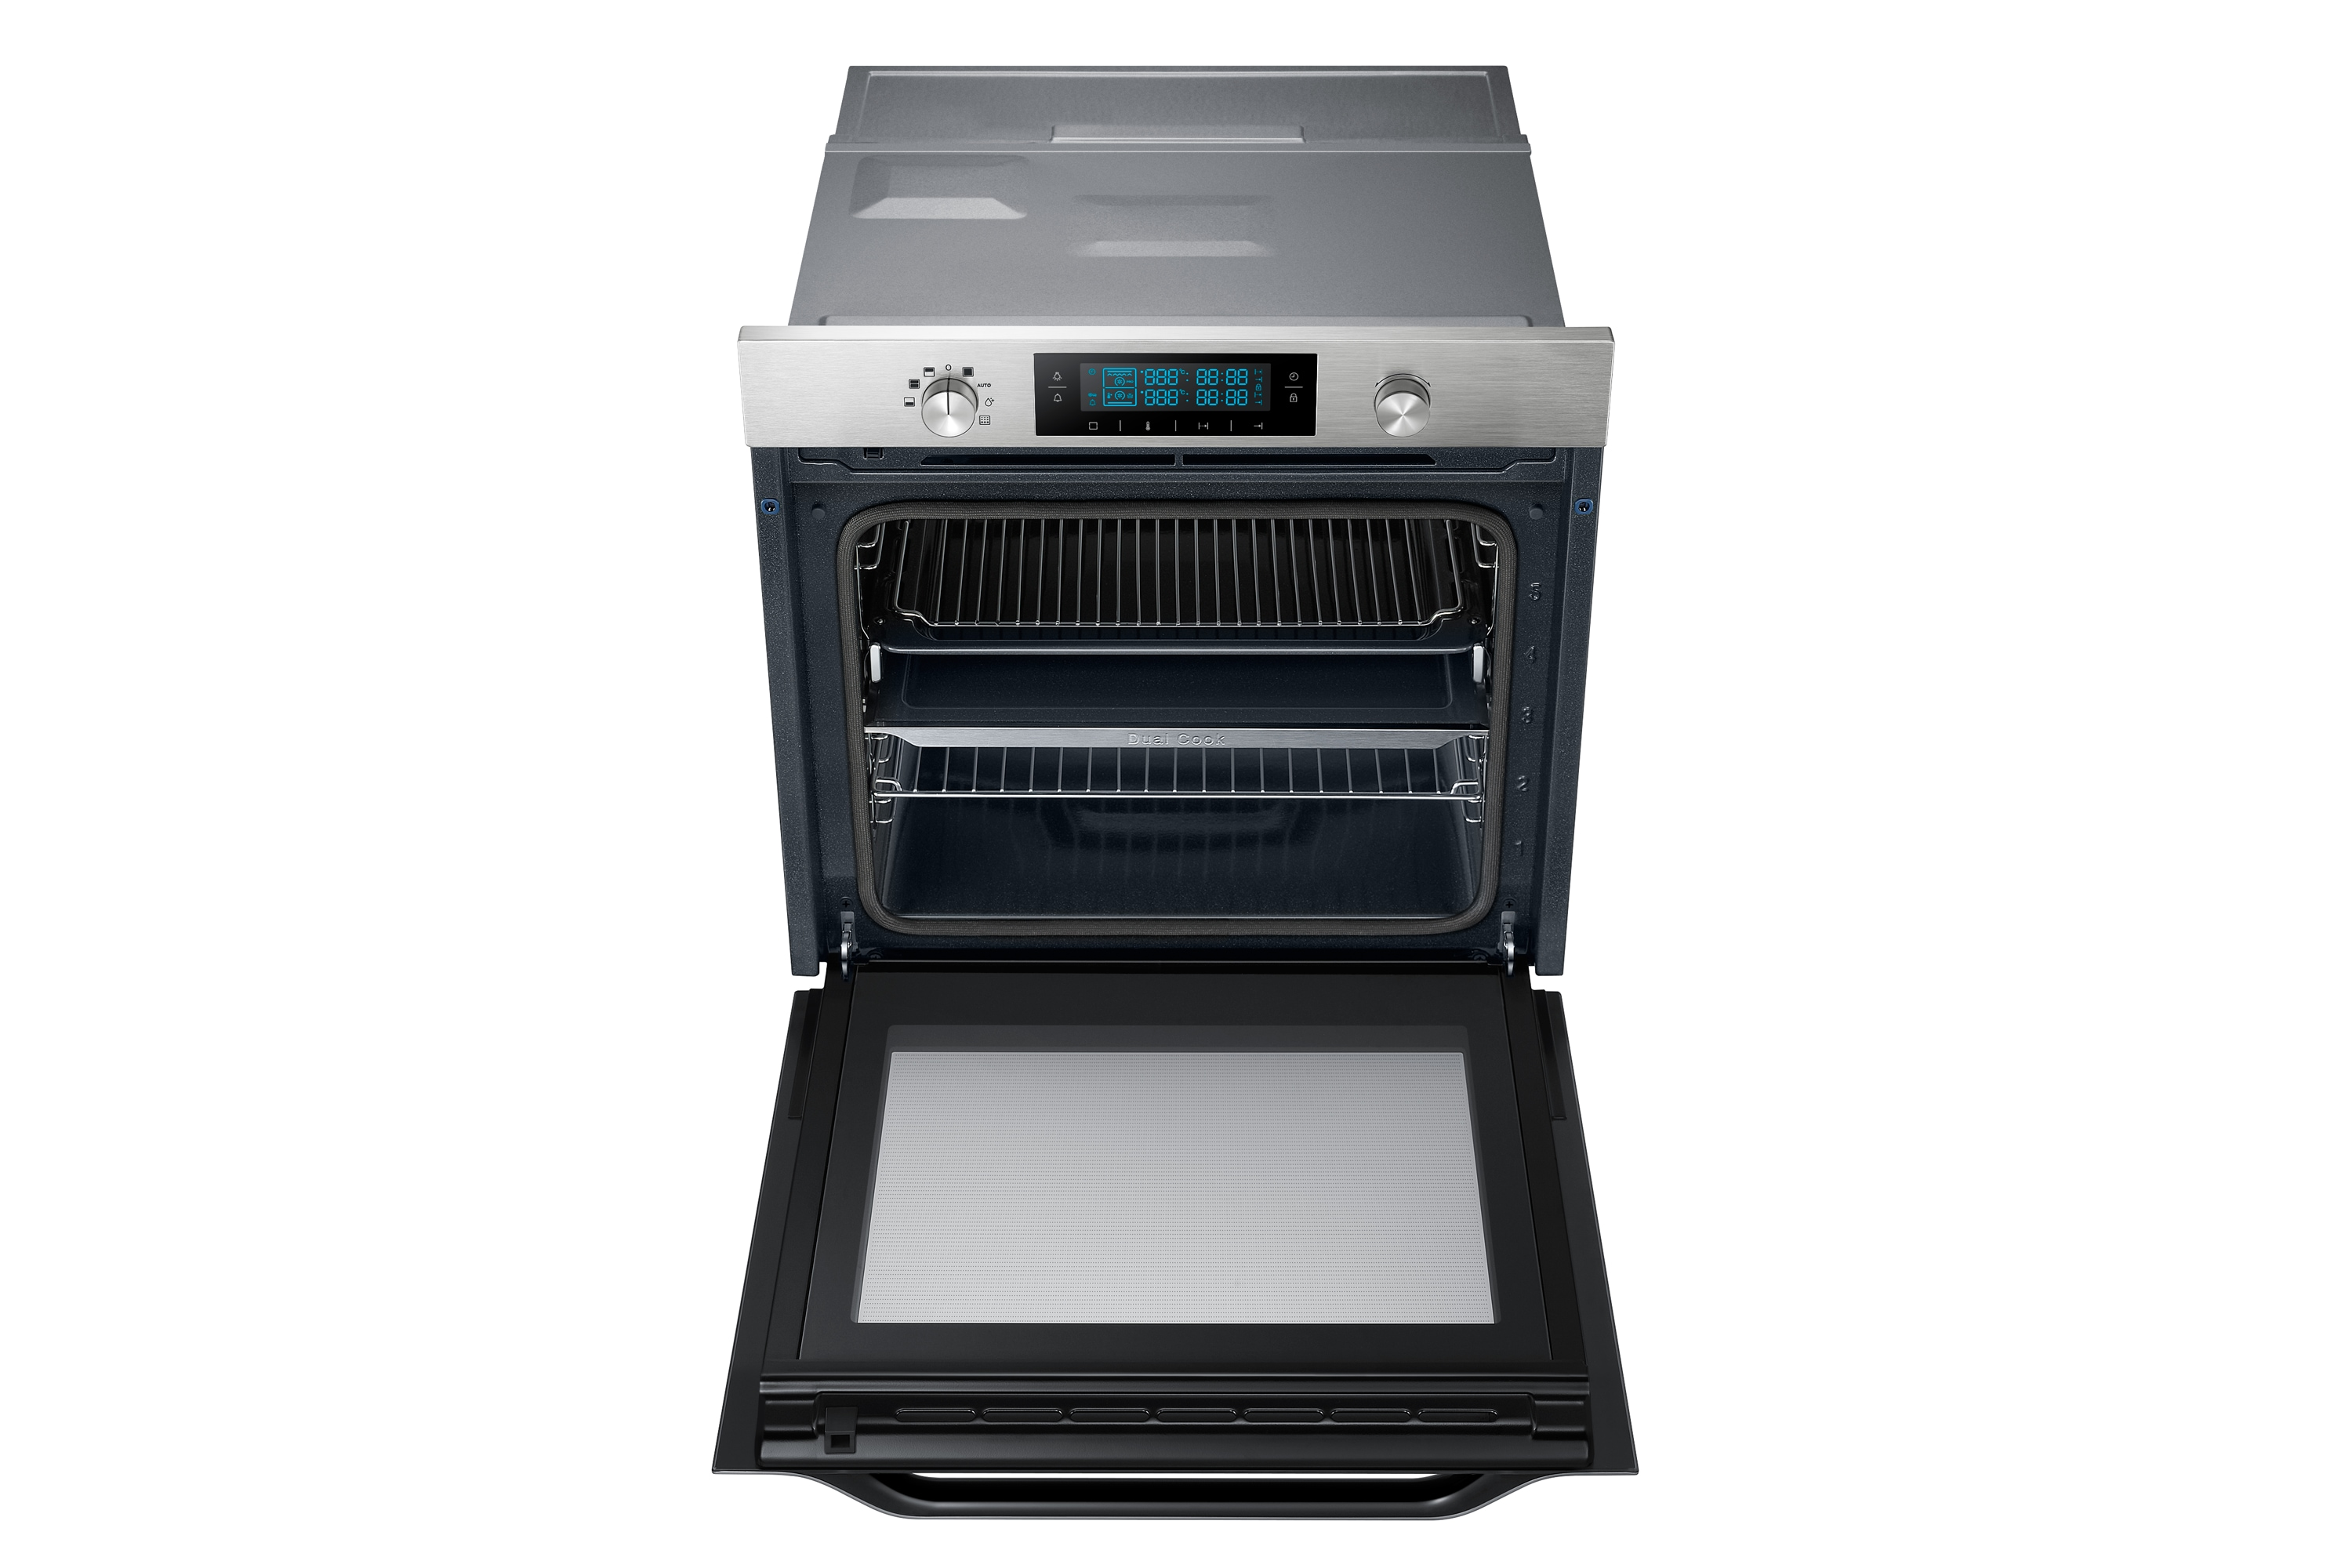 NV70F7796ES Dual Cook™ Electric Oven